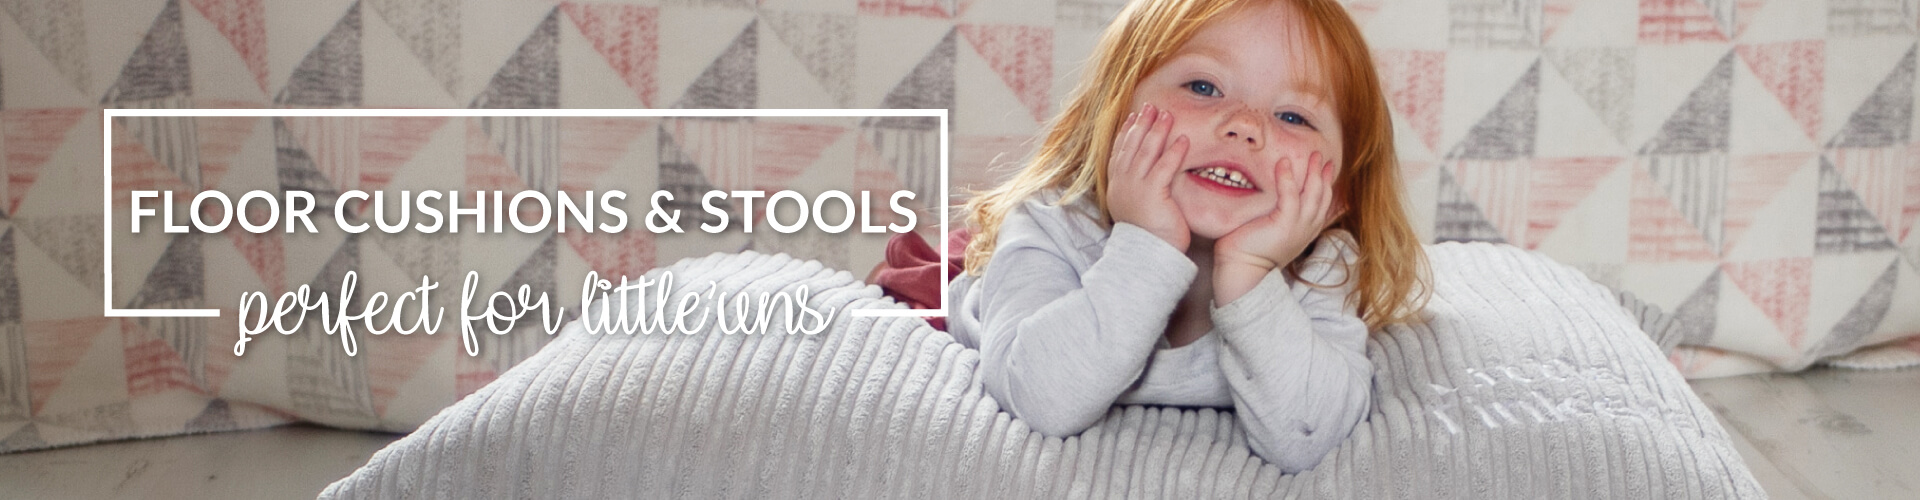 Kids Stools & Floor Cushions